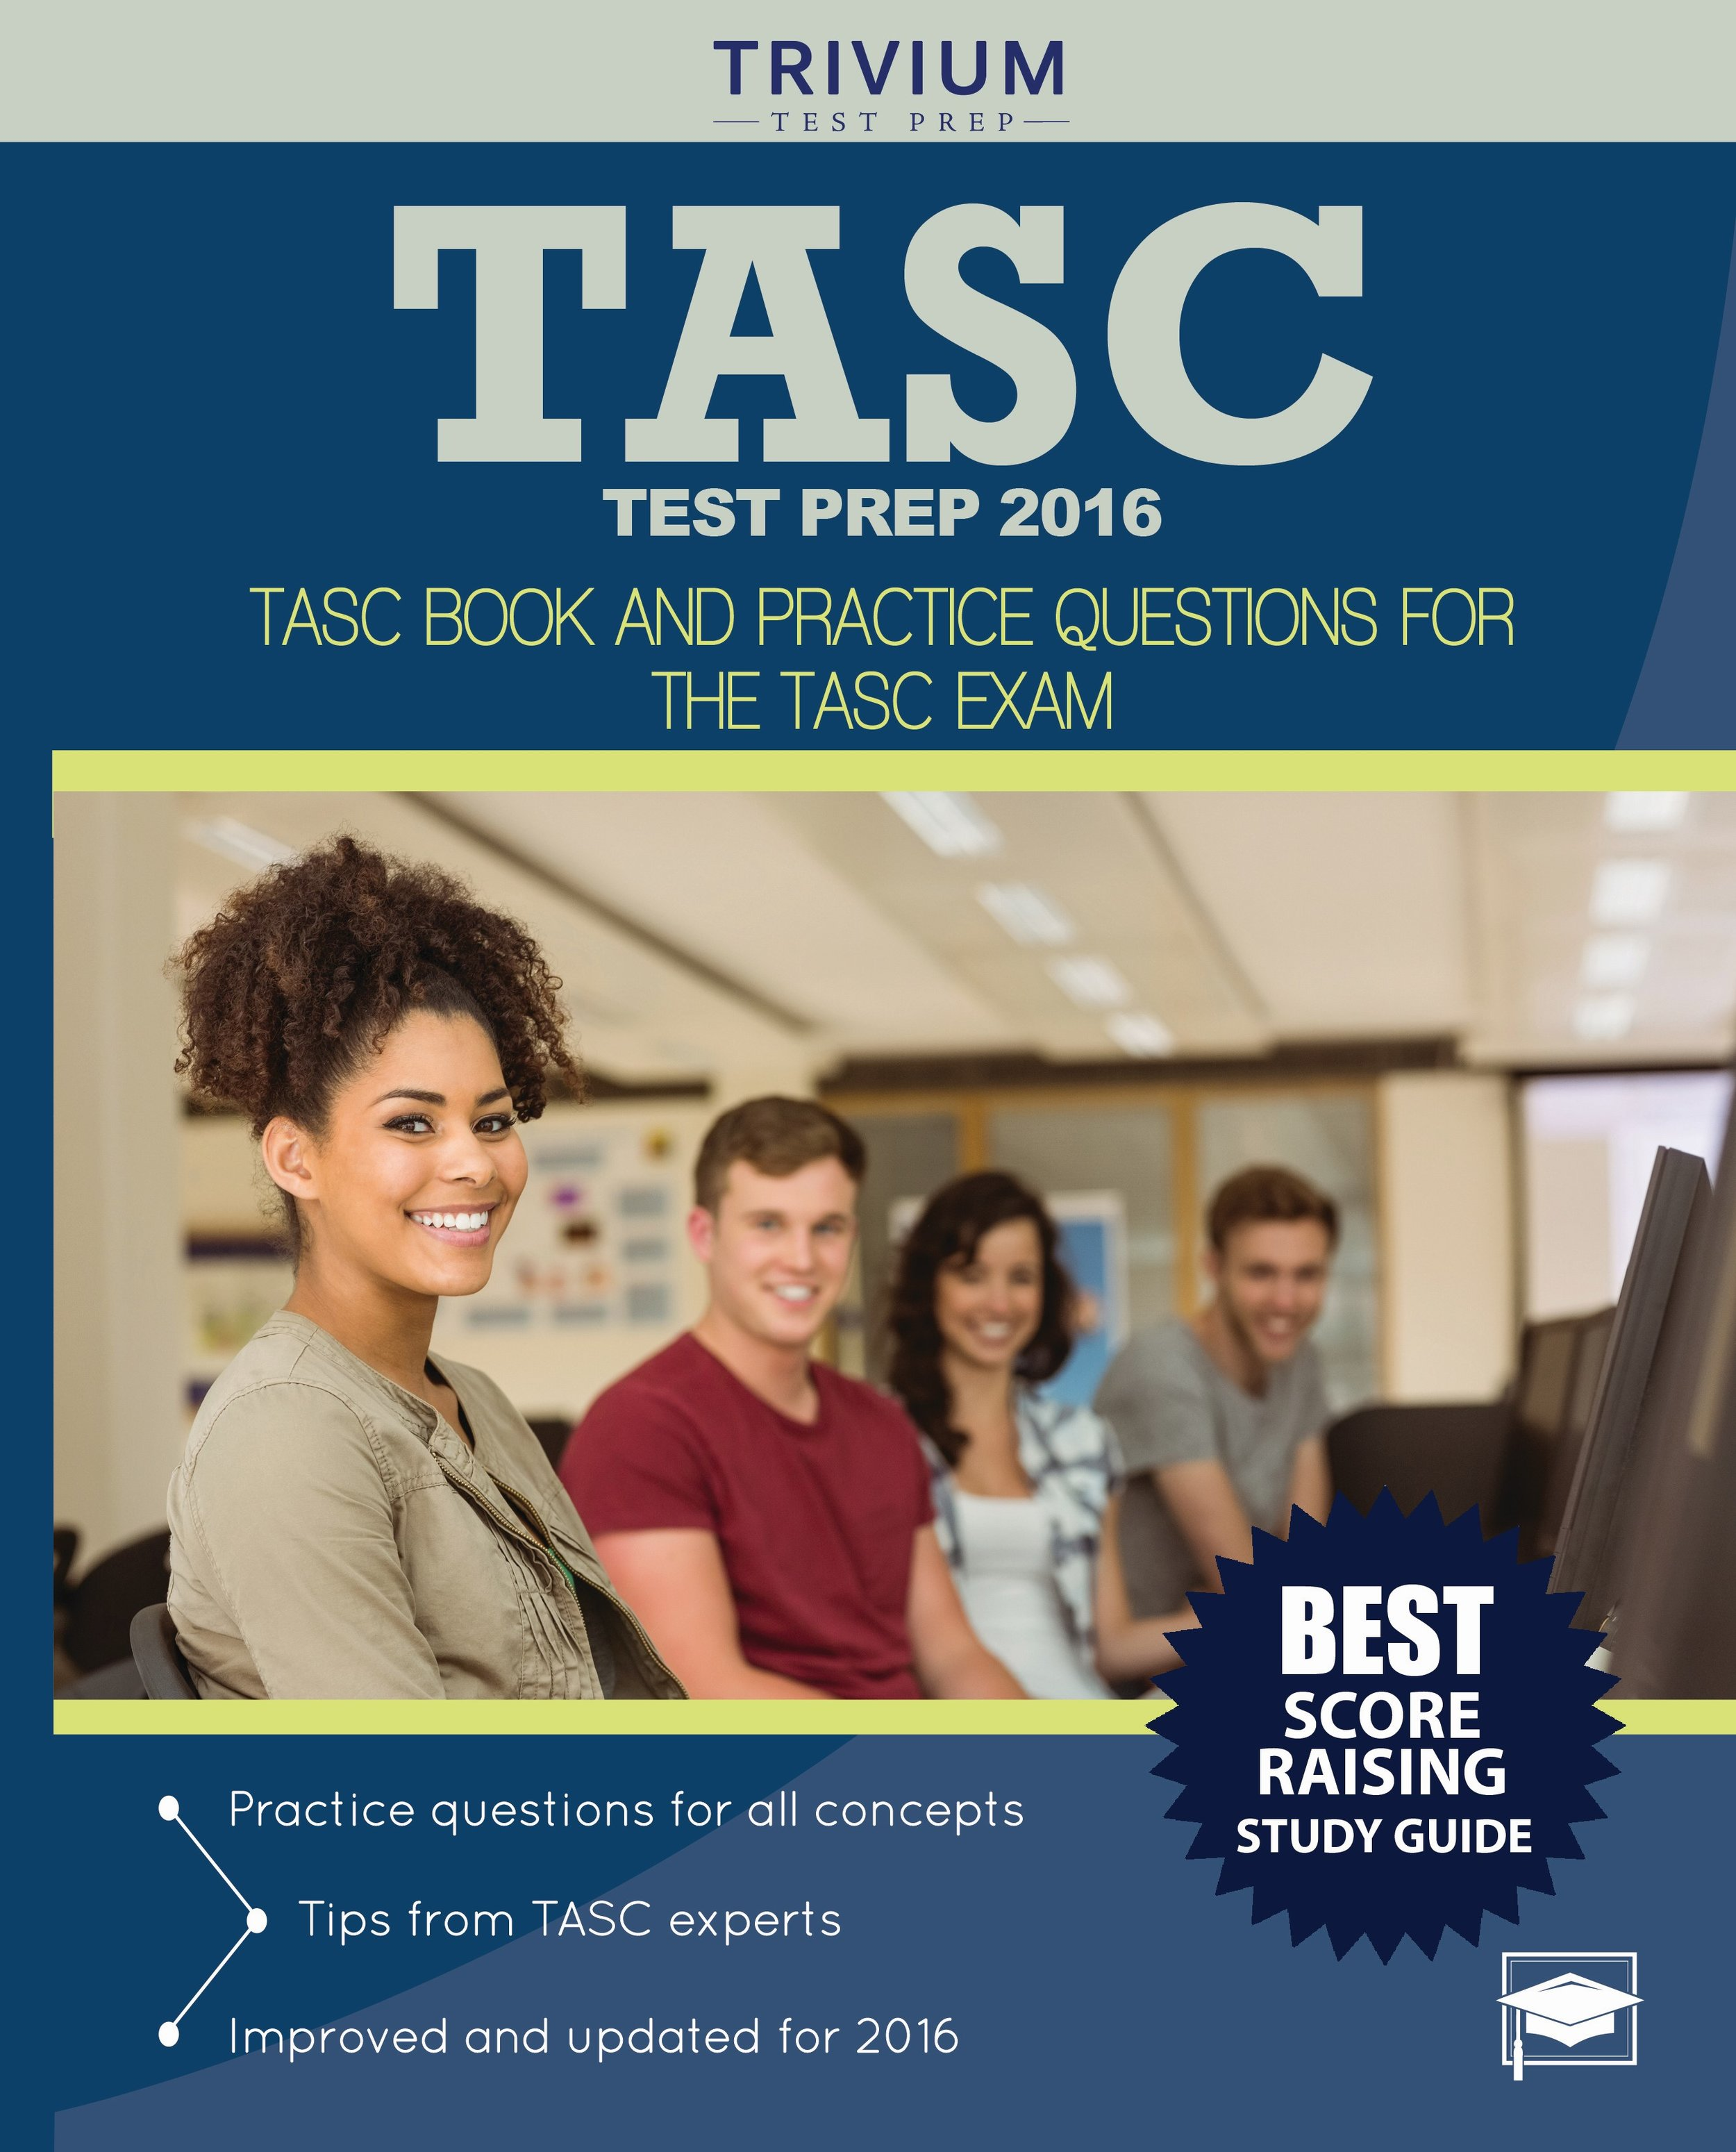 TASC Test Prep Practice Test Study Guide